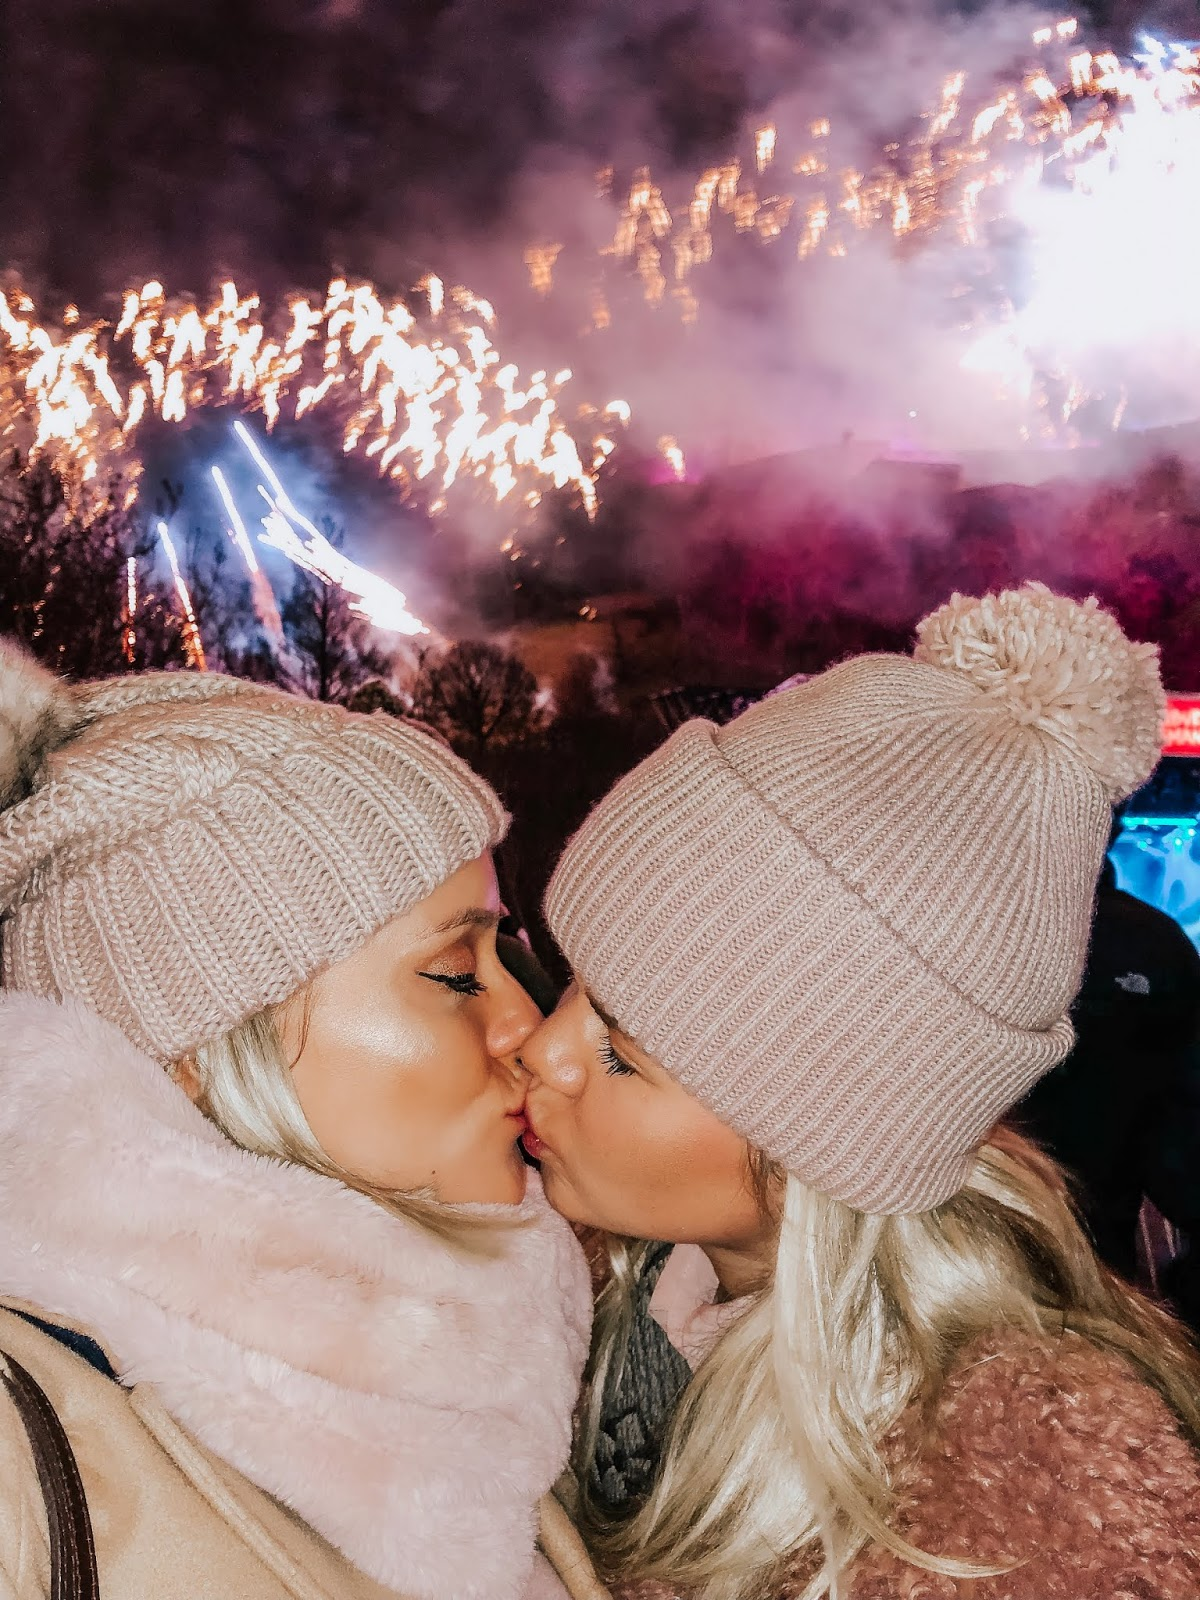 lesbian couple, whitney and megan, kissing on new years eve at Edinburgh's Hogmanay